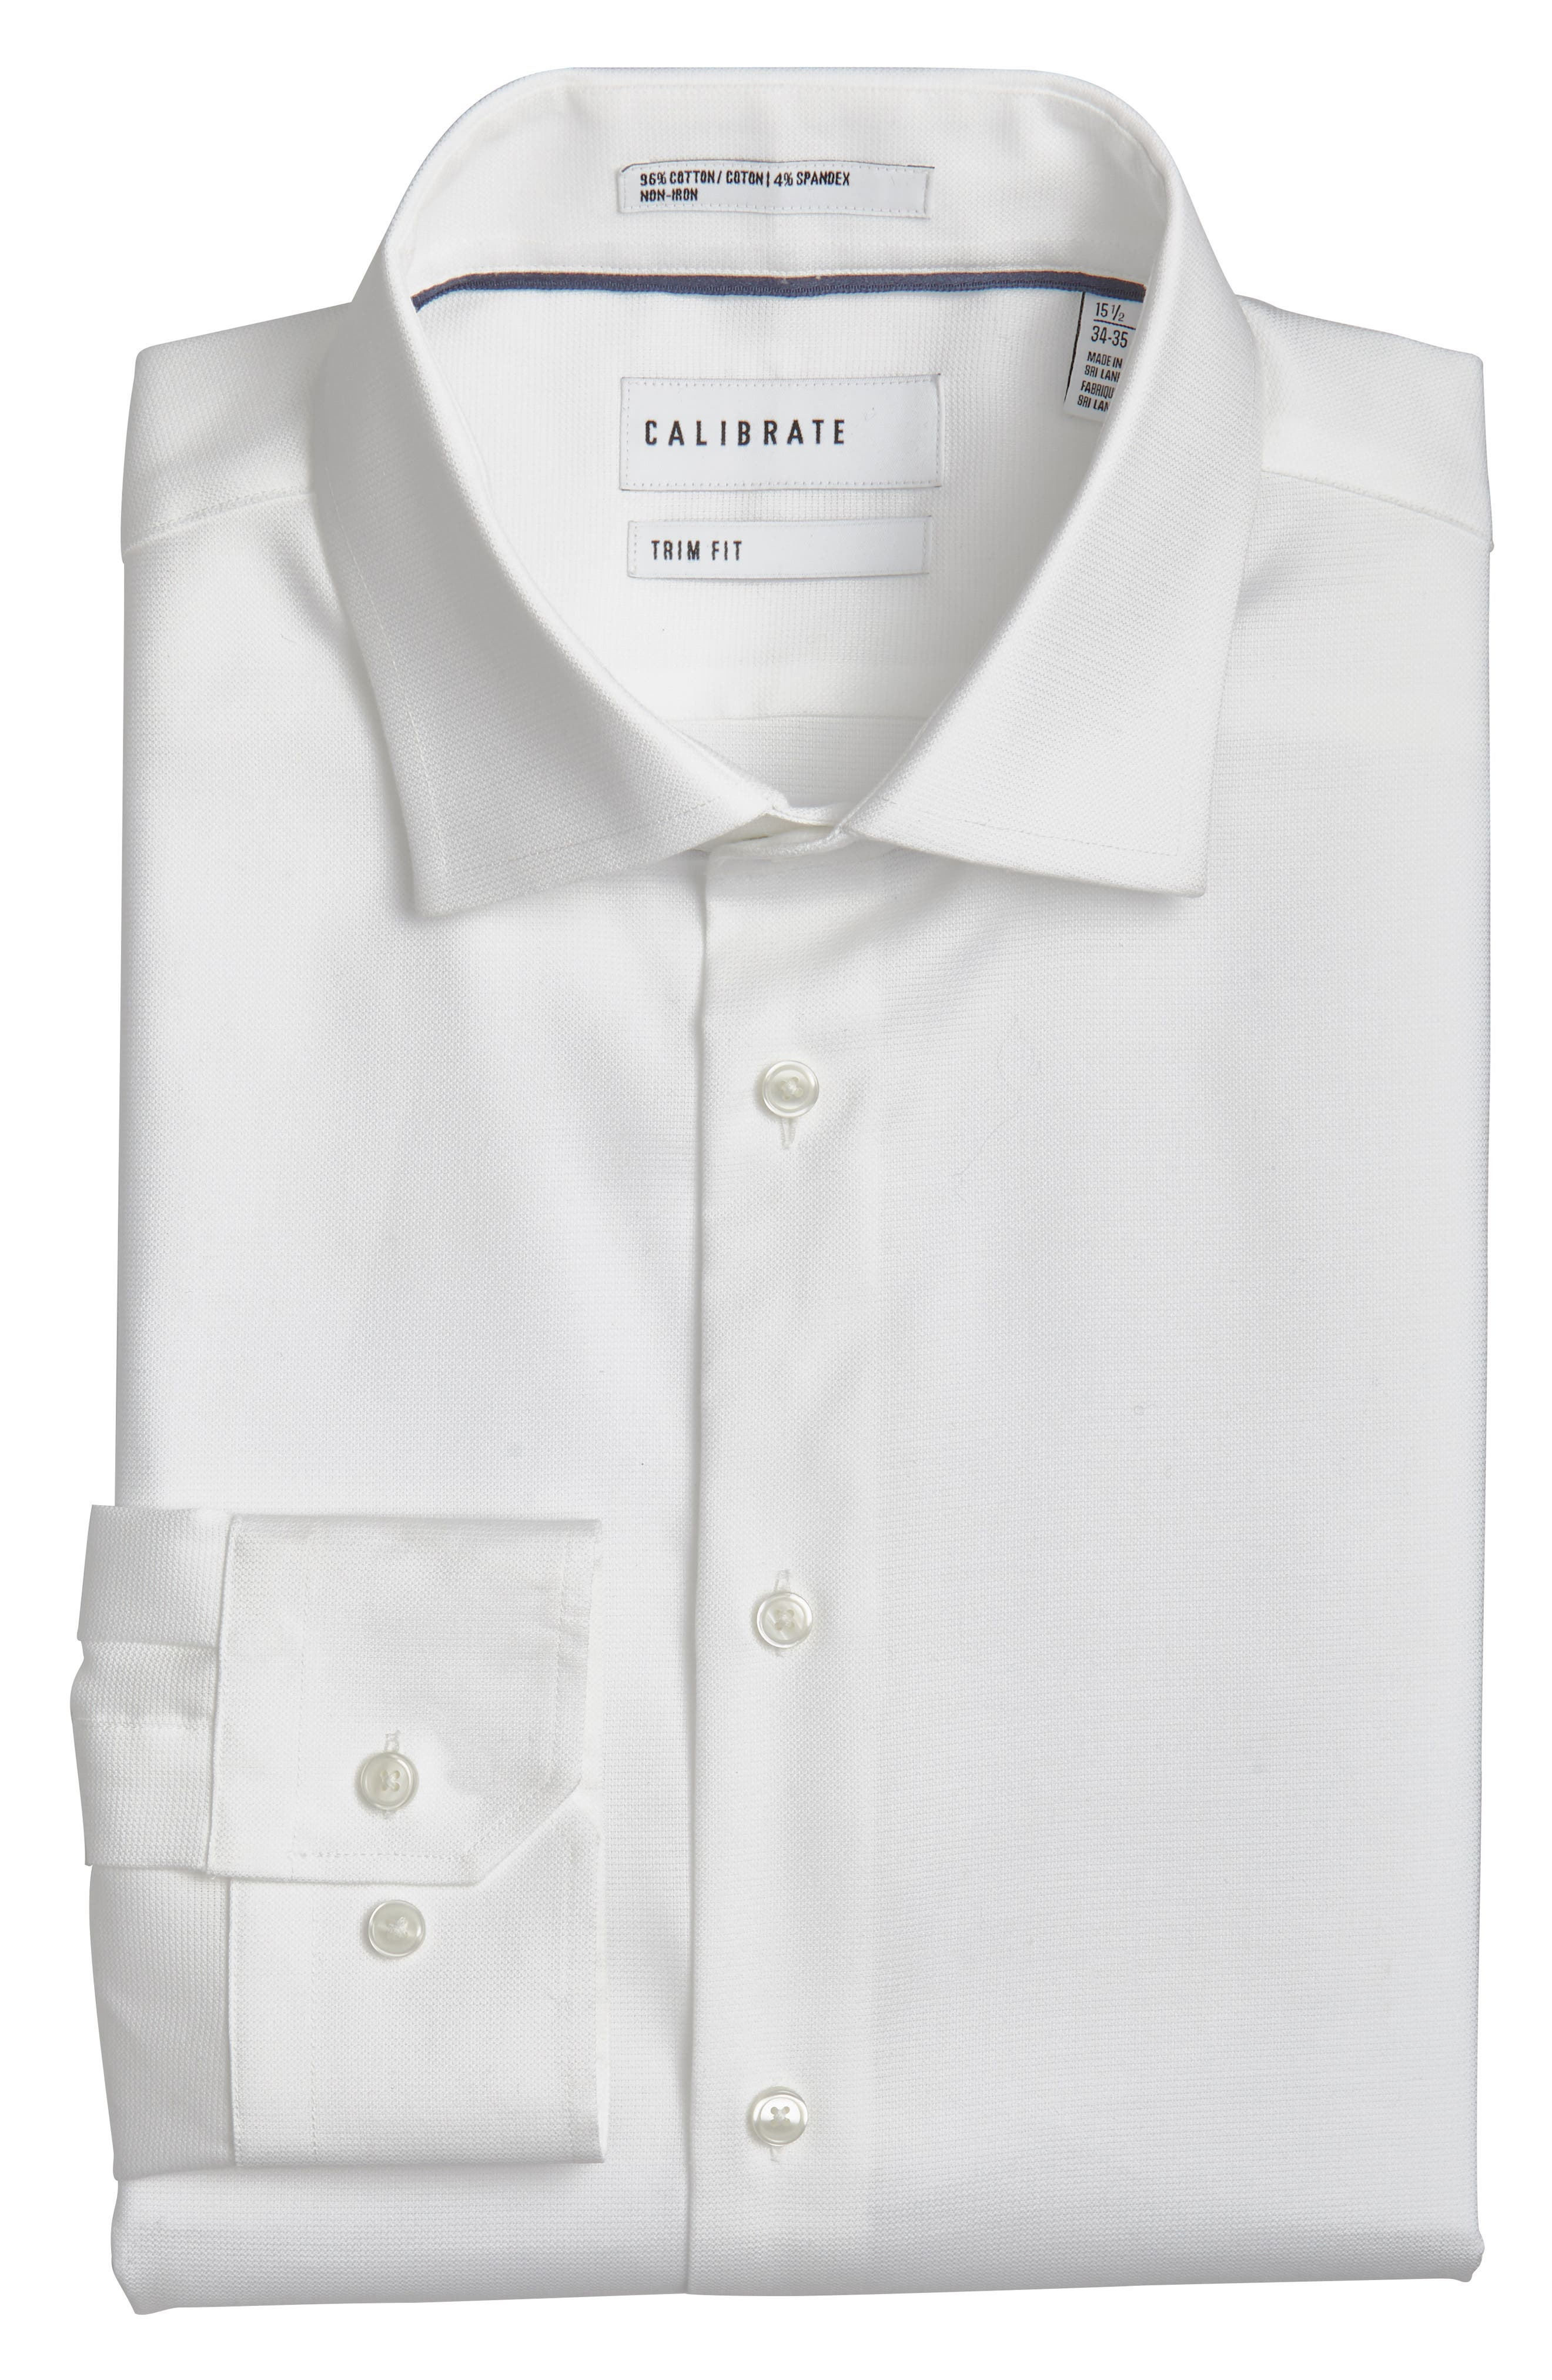 Calibrate Trim Fit Non-Iron Dress Shirt